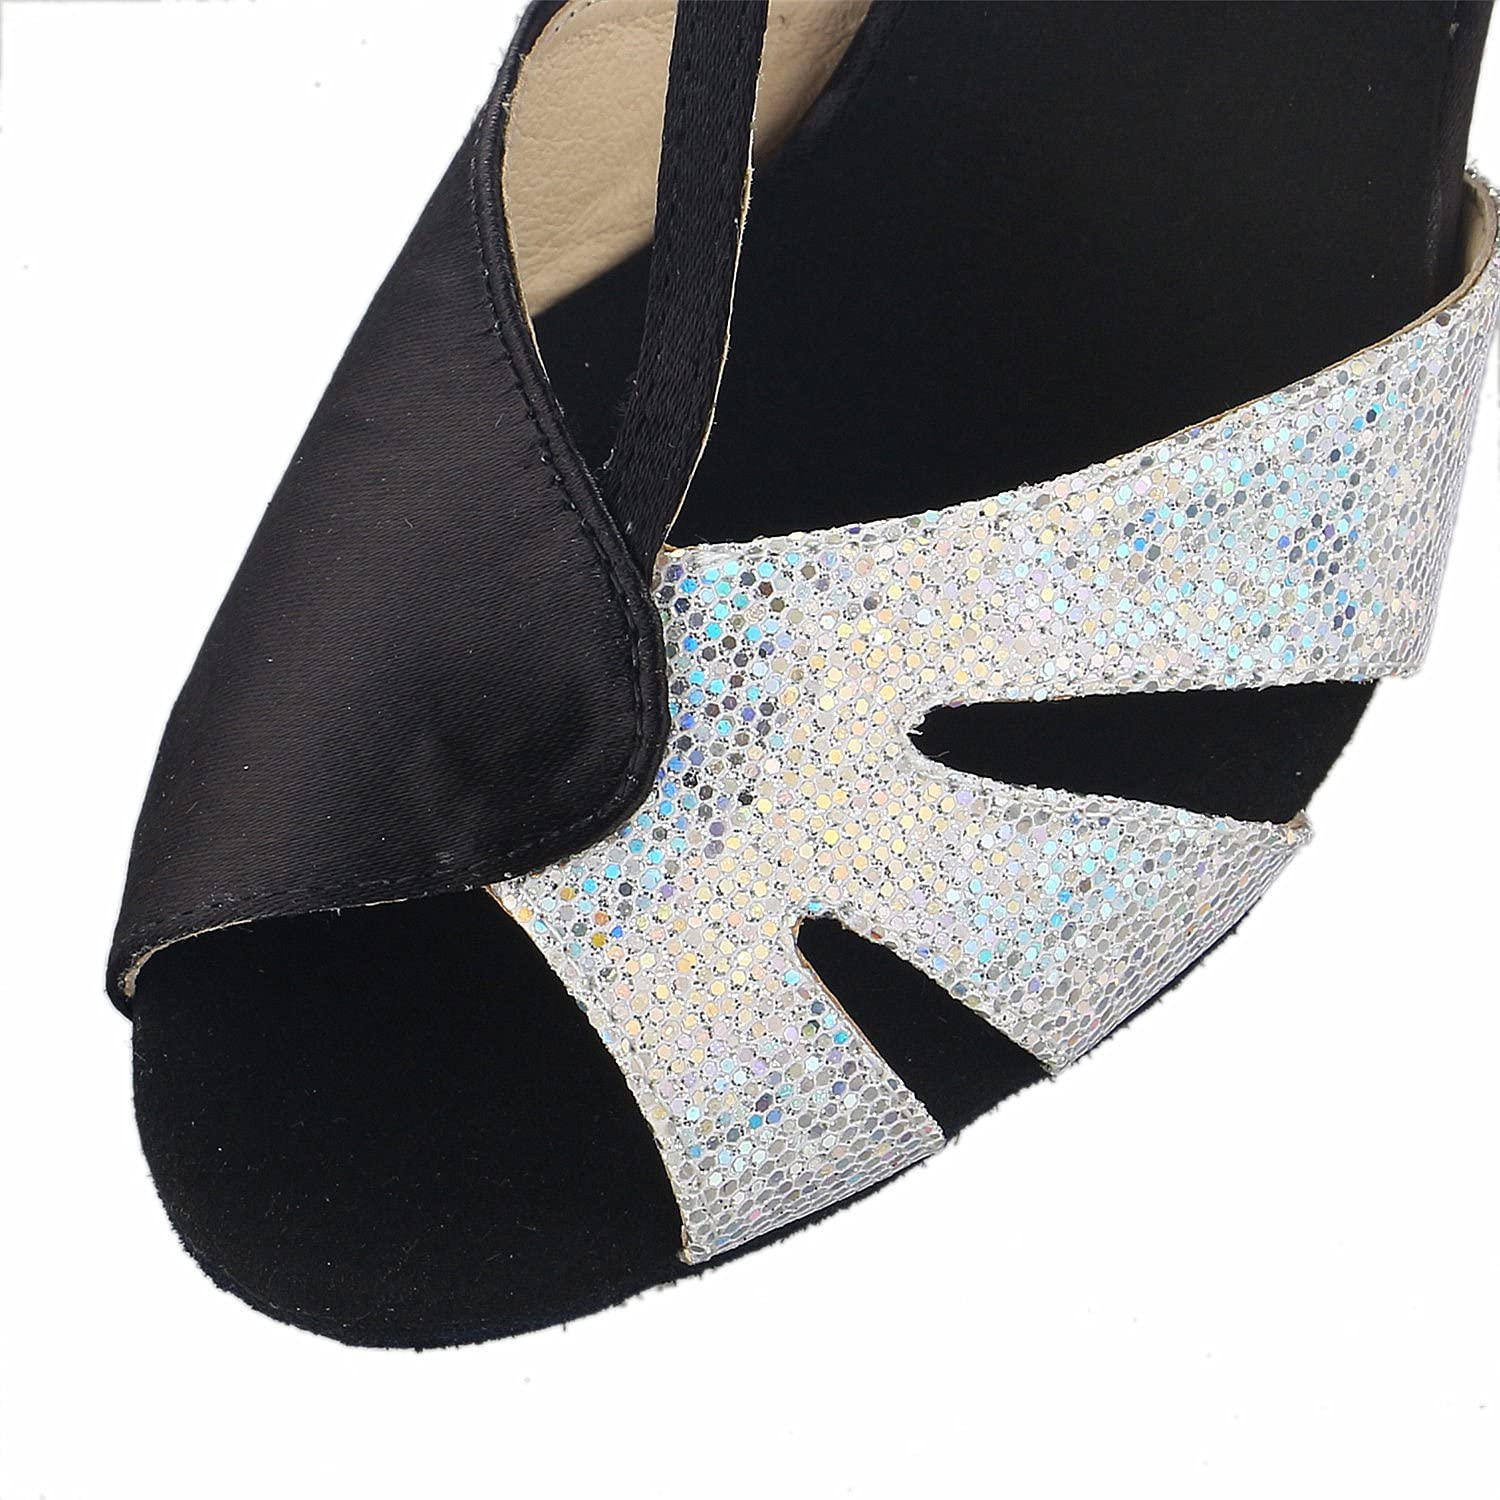 JIA JIA Y20520 Latin Womens Sandals 2.7 Flared Heel Super Satin with Sparkling Glitter Dance Shoes